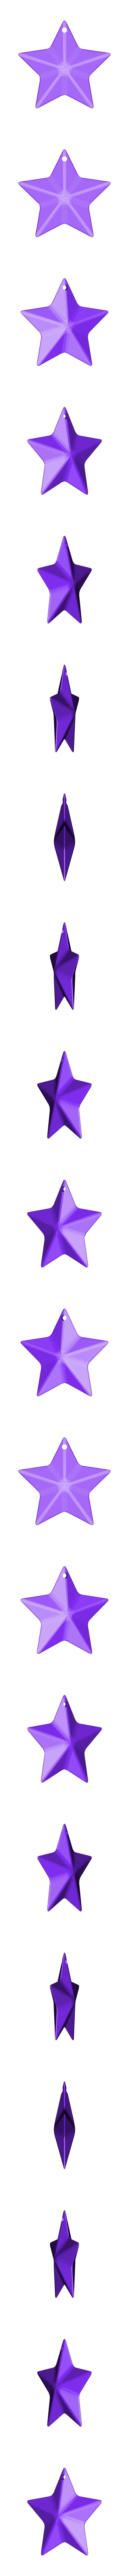 star.stl Download STL file Outa Space Mobile • 3D print design, XYZWorkshop